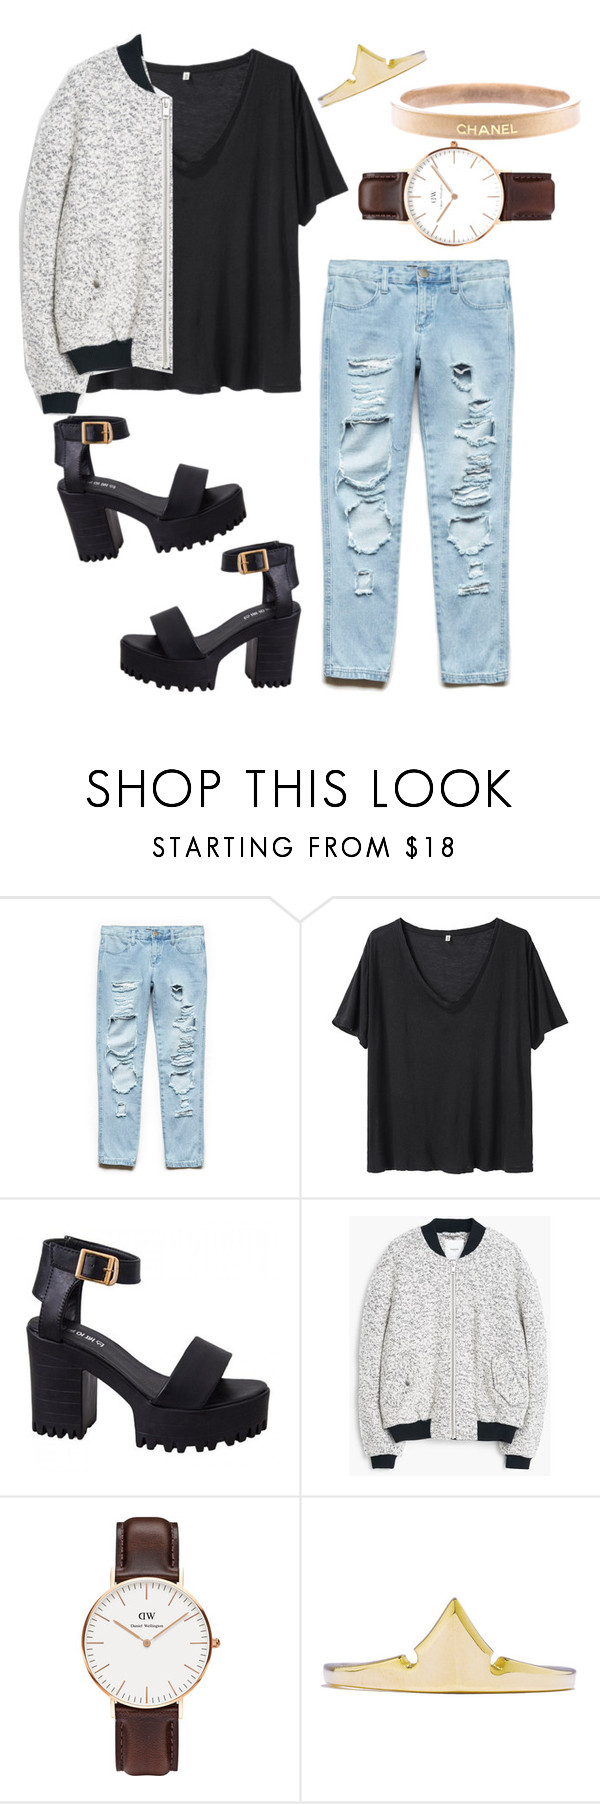 """Untitled #179"" by charmburritotaco ❤ liked on Polyvore featuring Forever 21, R13, MANGO, Daniel Wellington, Chanel, women's clothing, women's fashion, women, female and woman"